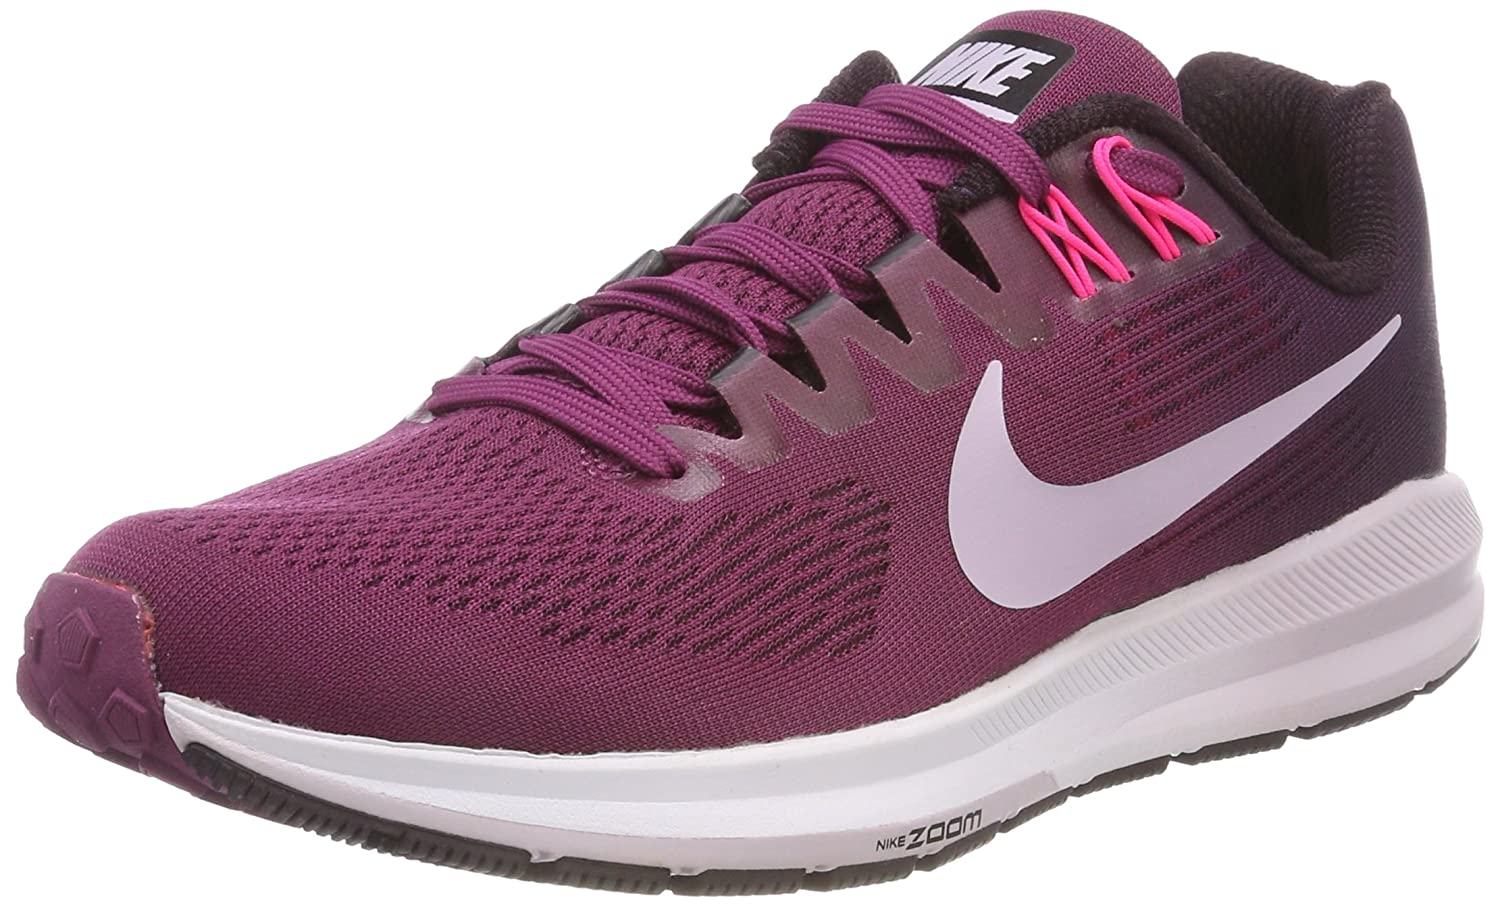 NIKE Women's Air Zoom Structure 21 Running Shoe B075XH9MBQ 5 B(M) US|Pure Platimum/Anthracite